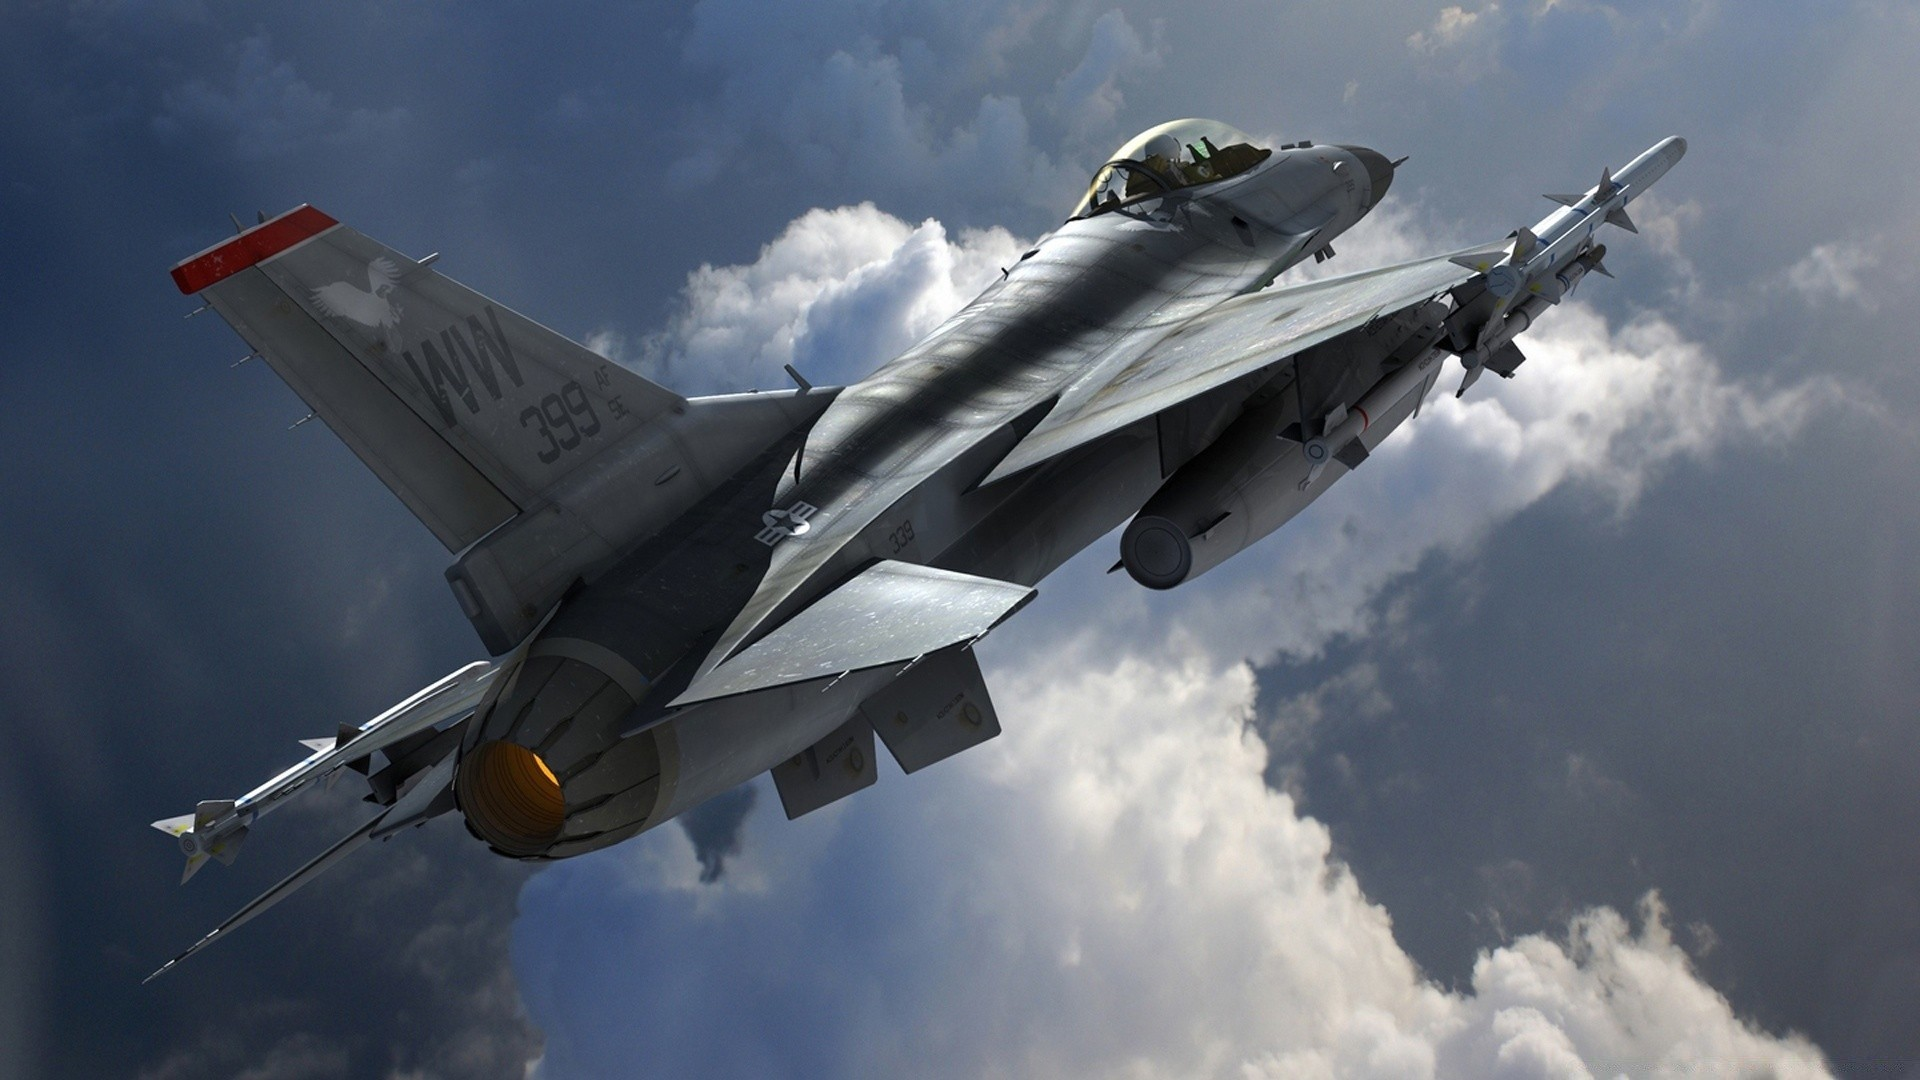 Multirole Fighter Aircraft General Dynamics F-16 Fighting